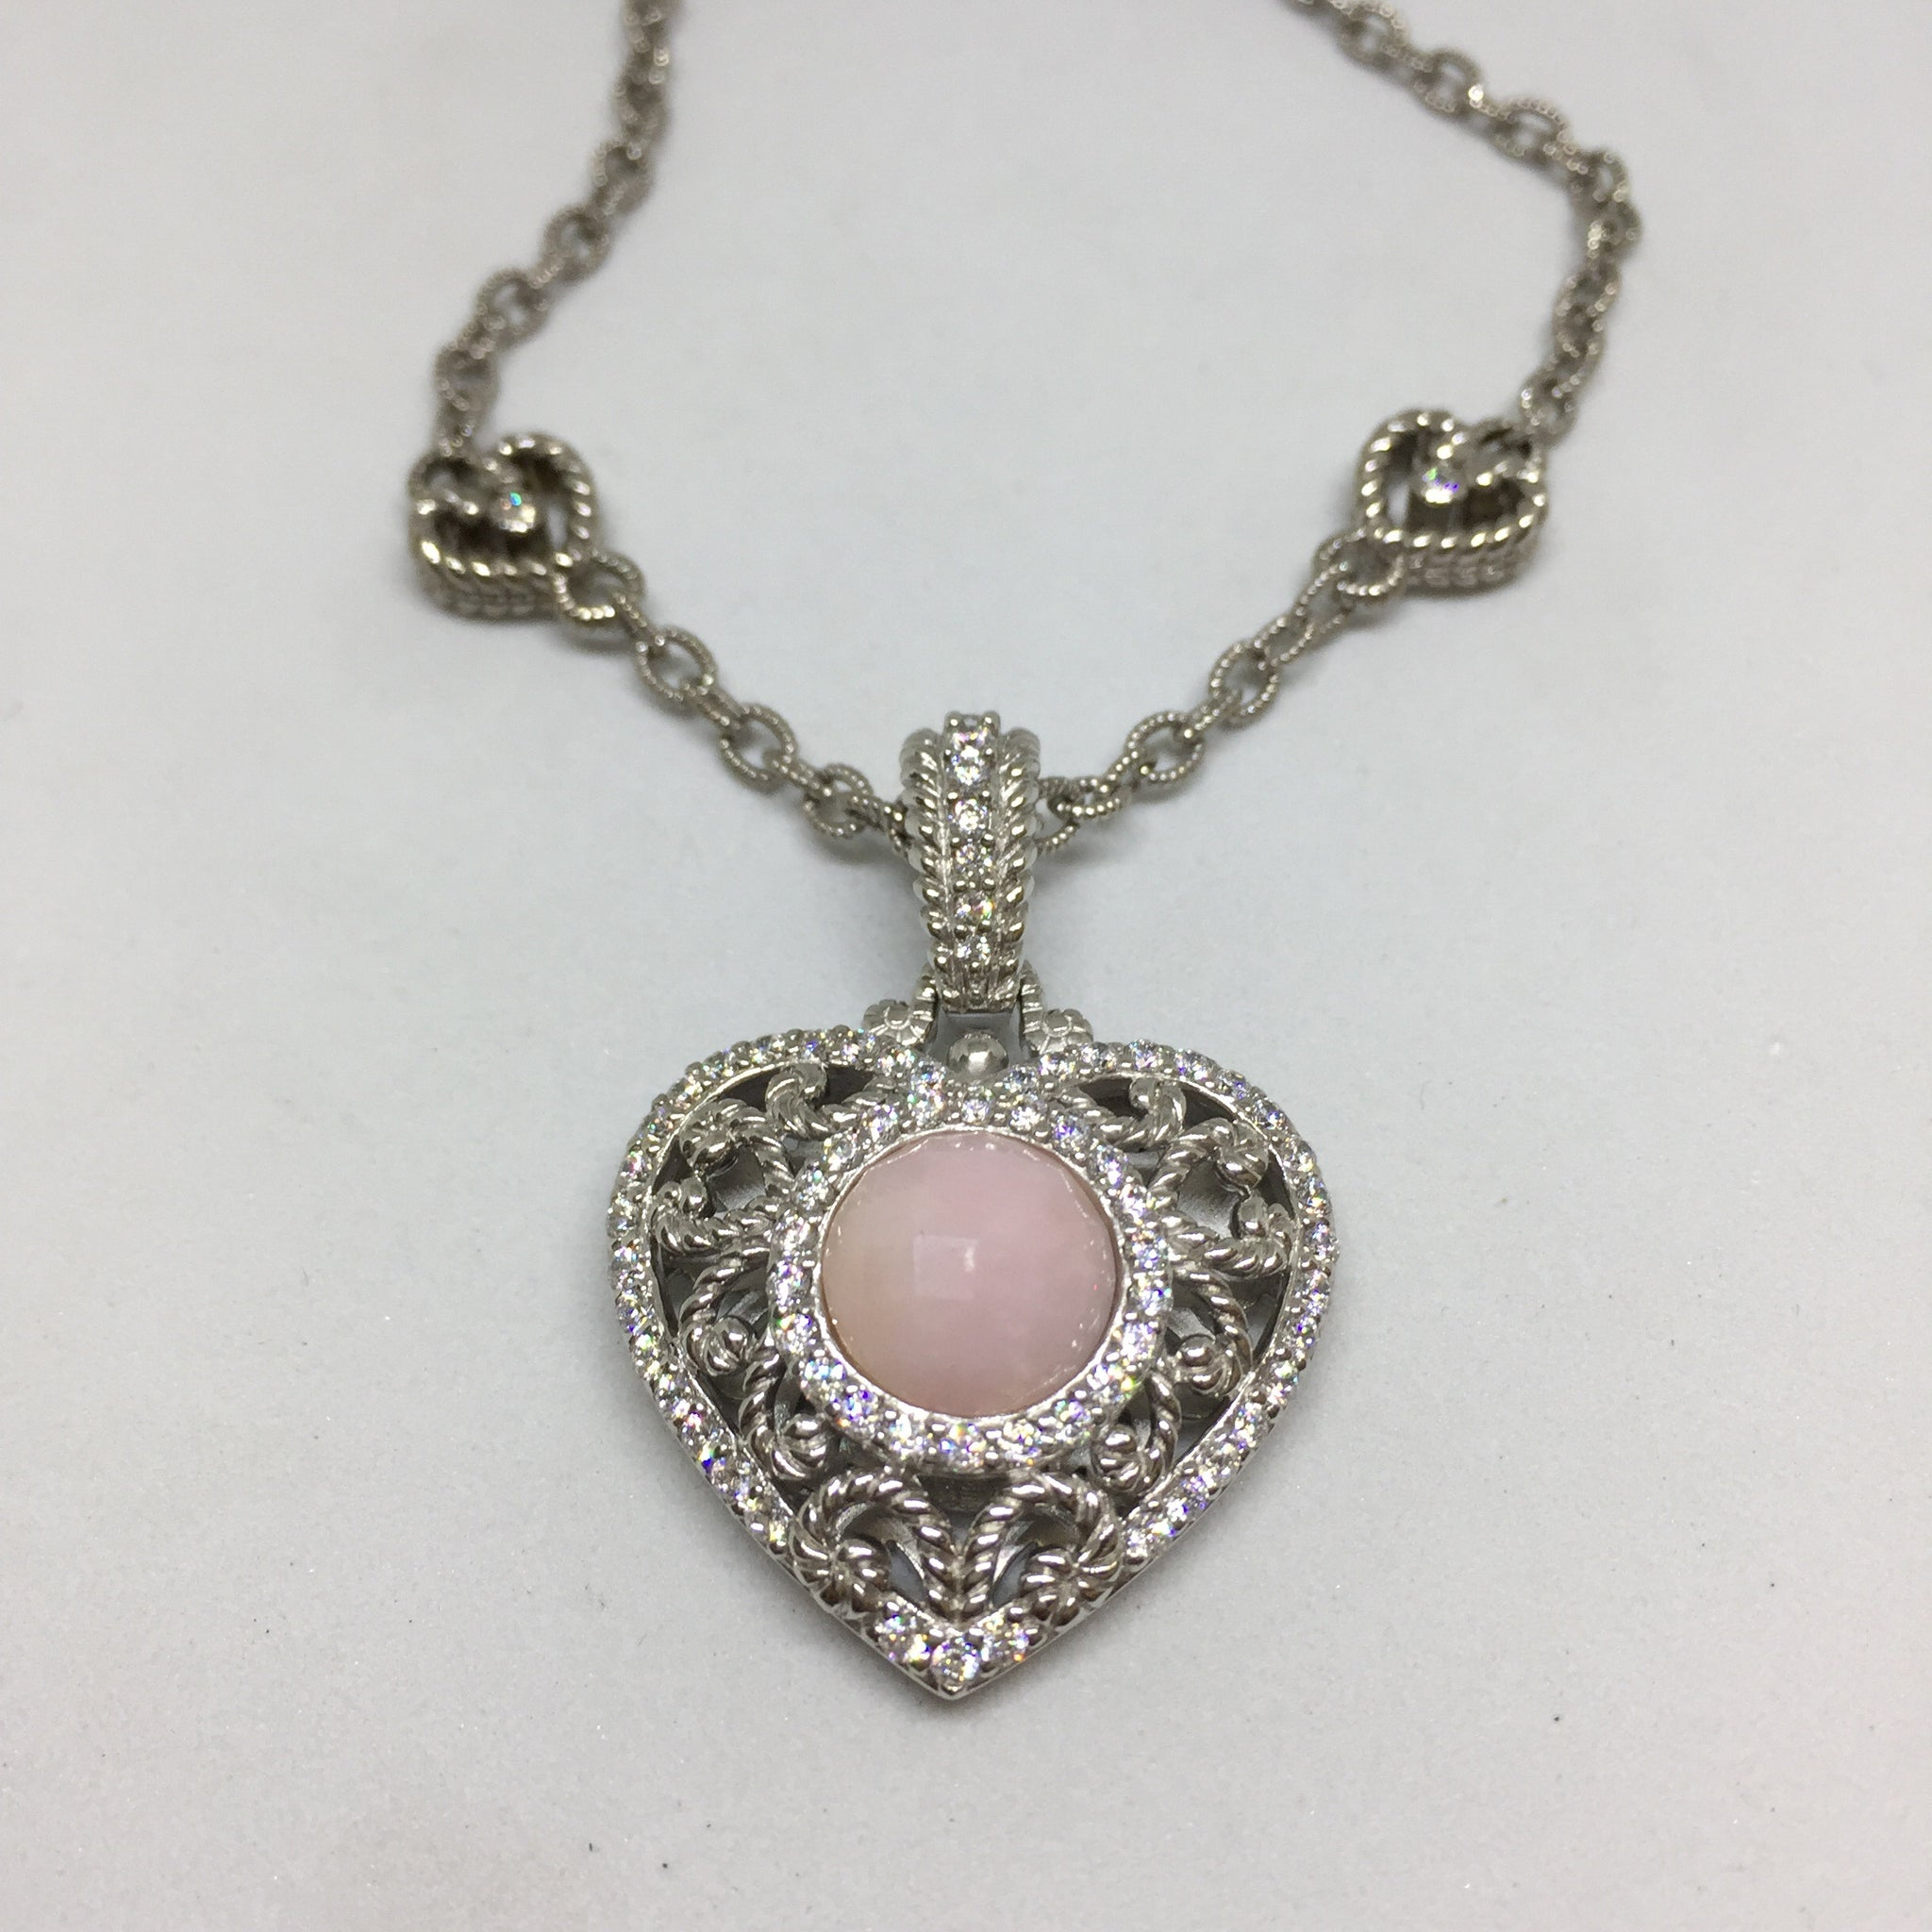 petite necklace and categories jewelry category pink ripka twin jewelers heart pendant product crystal la judith ampc royal